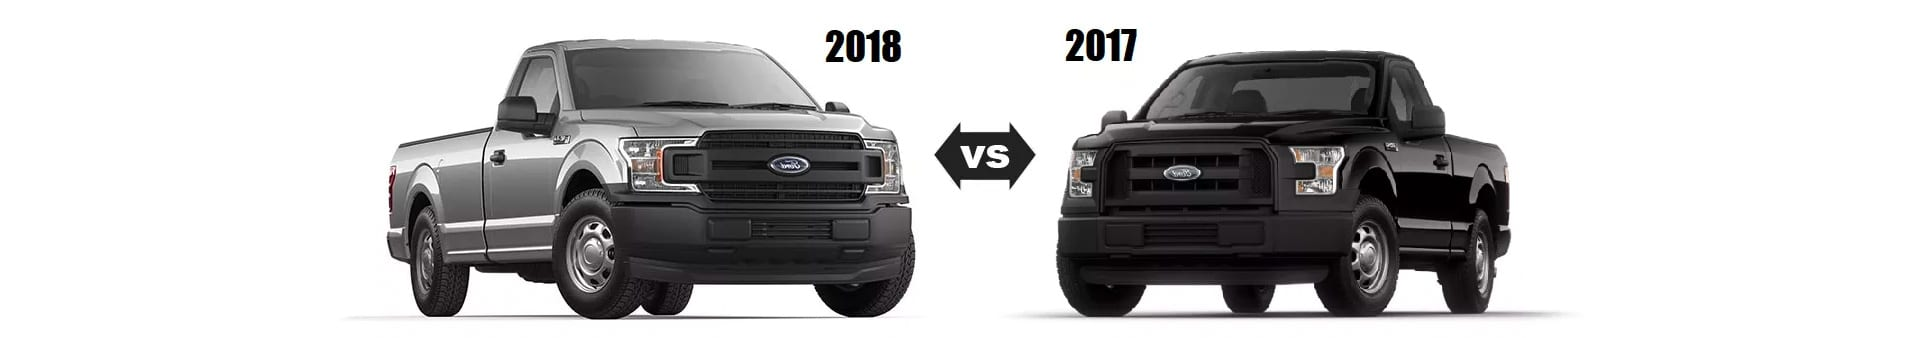 The 2018 Ford F-150 Compared to the 2017 F-150